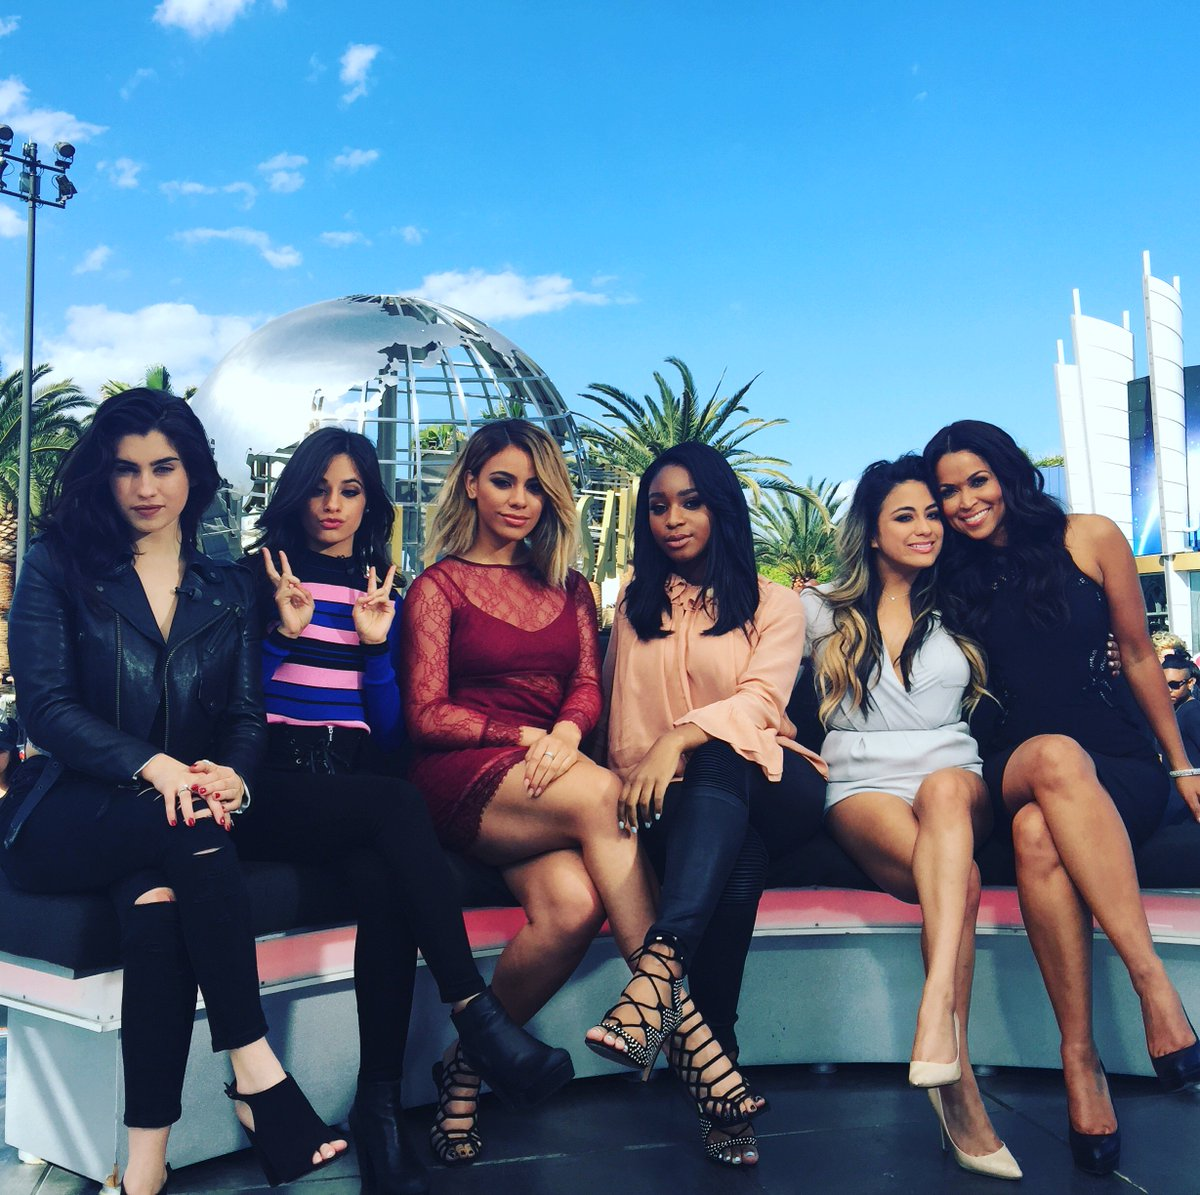 Fun times at @ExtraTV yesterday with the FAB ladies of @FifthHarmony :)! Love them! https://t.co/MX2P9iAHmG